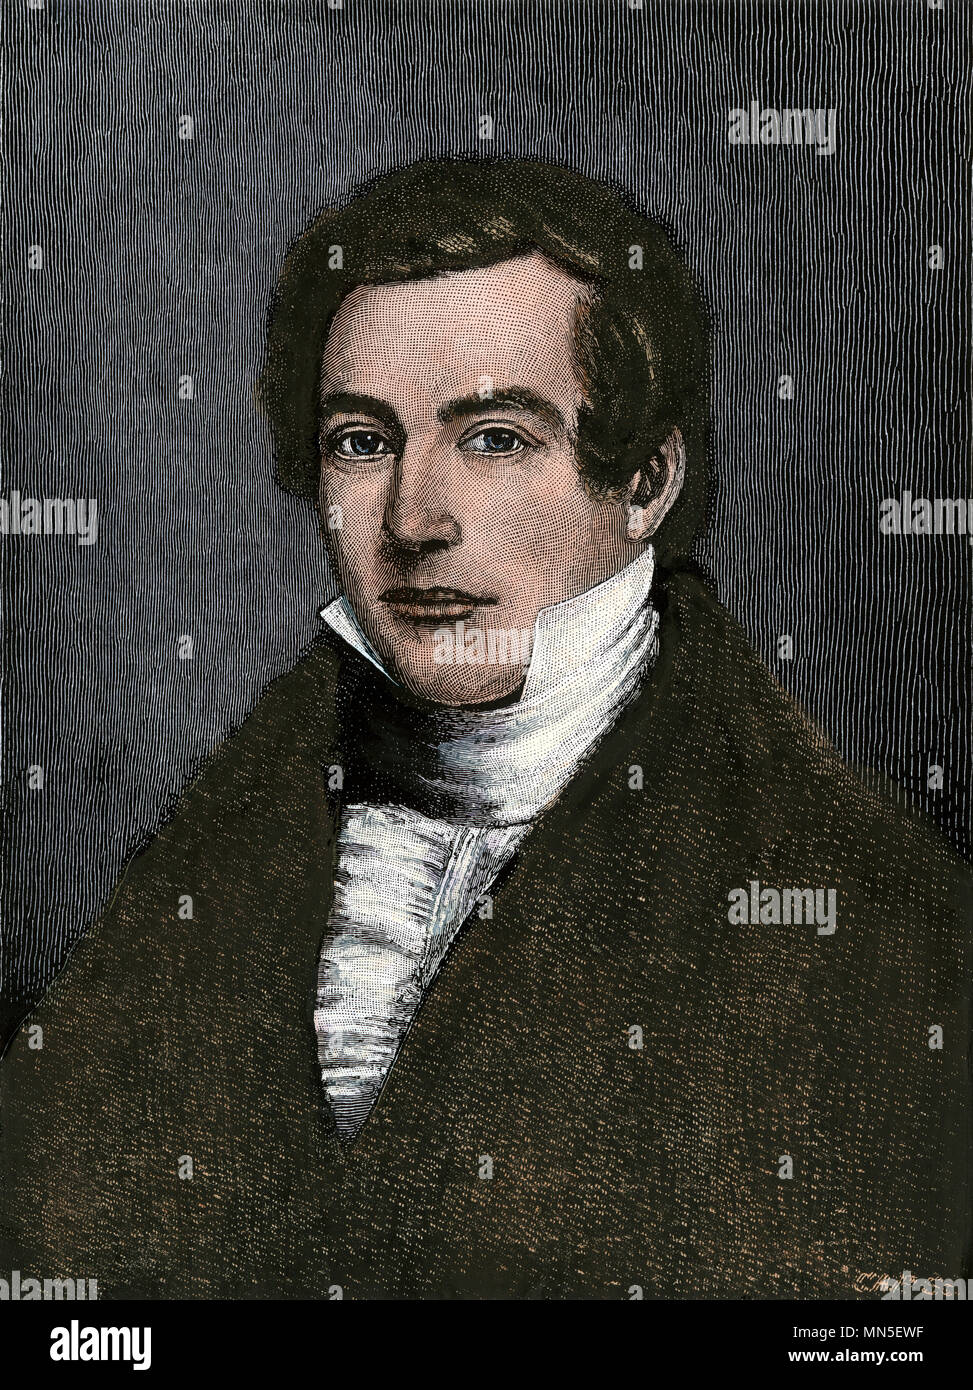 William Lloyd Garrison when a young man. Hand-colored woodcut from a portrait by Swain - Stock Image